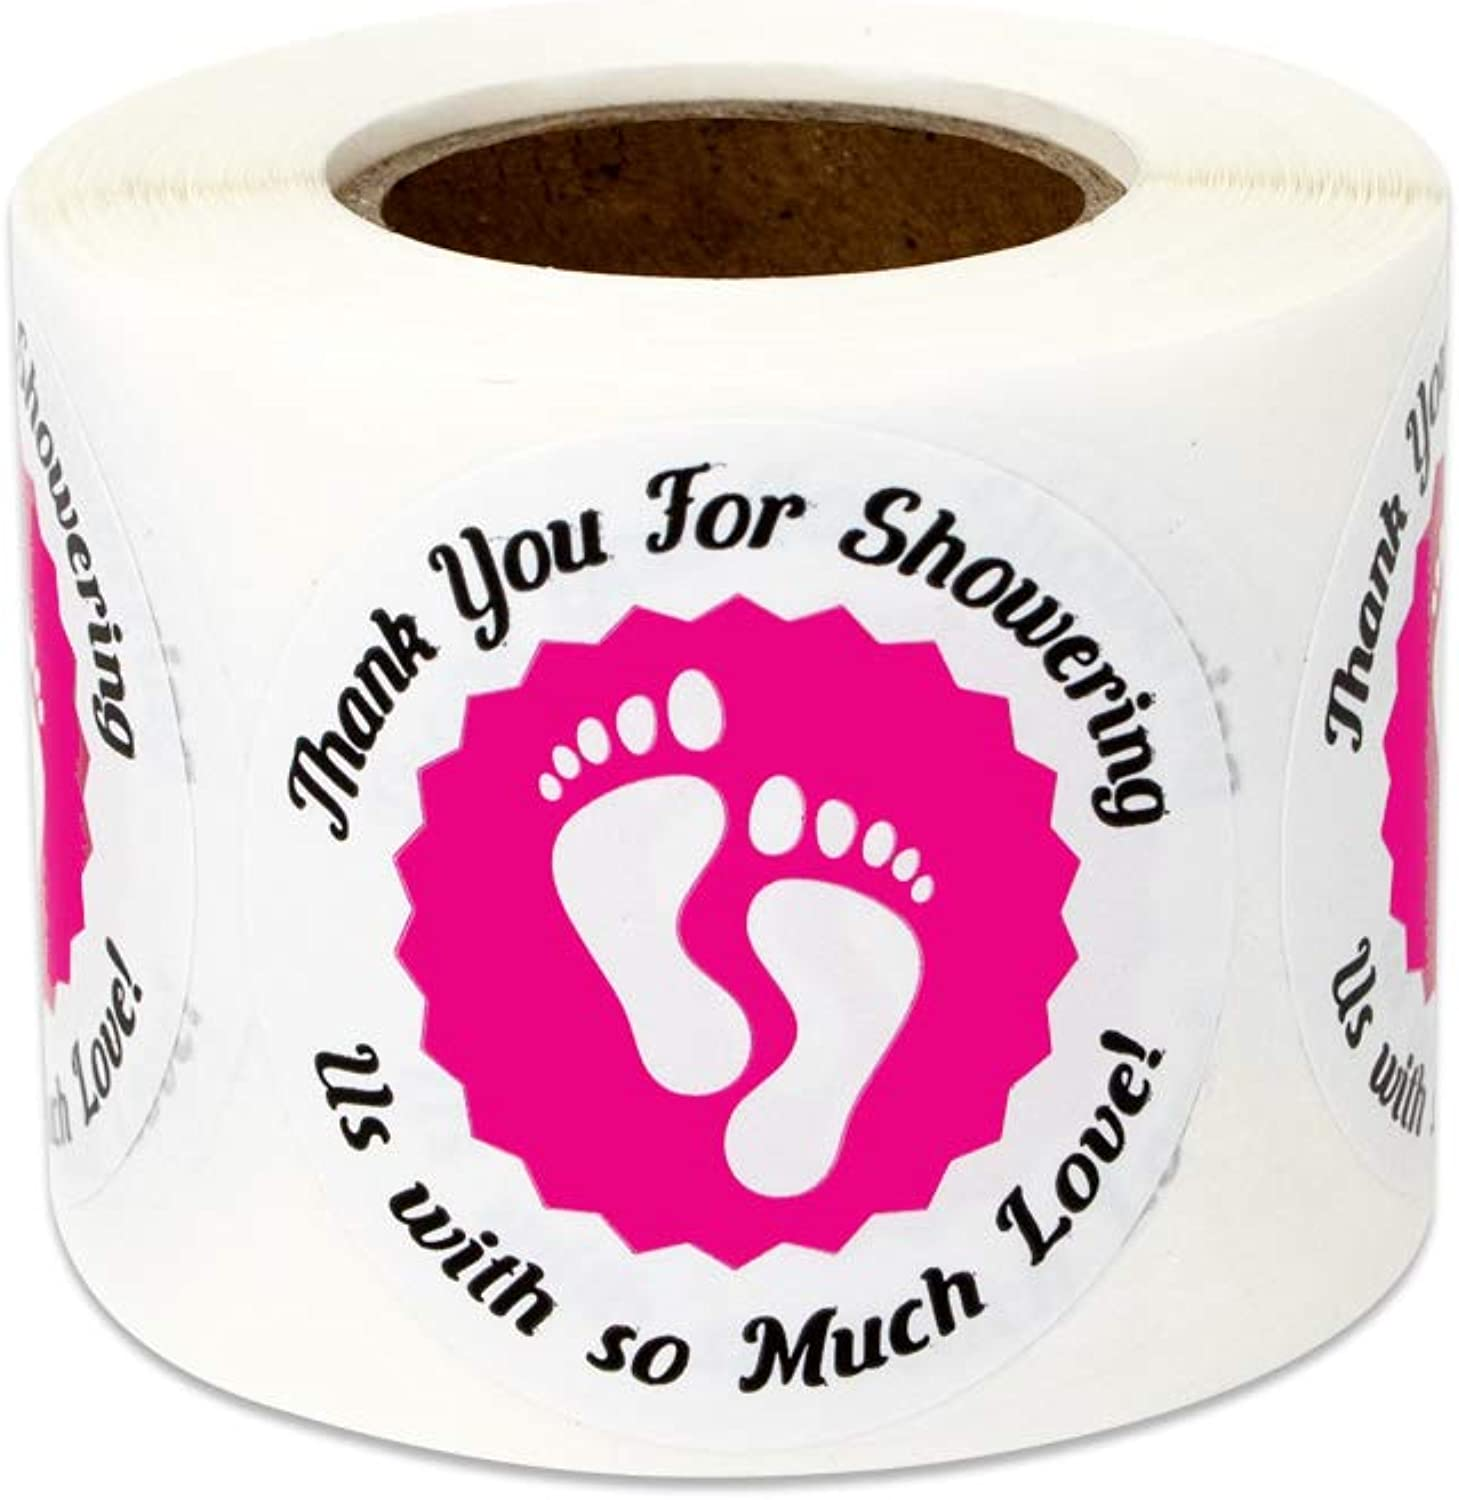 600 Labels - Baby Shower Stickers for Thank You Appreciation Babies Gender Reveal (1.5 Inch Pink - 2 Rolls)